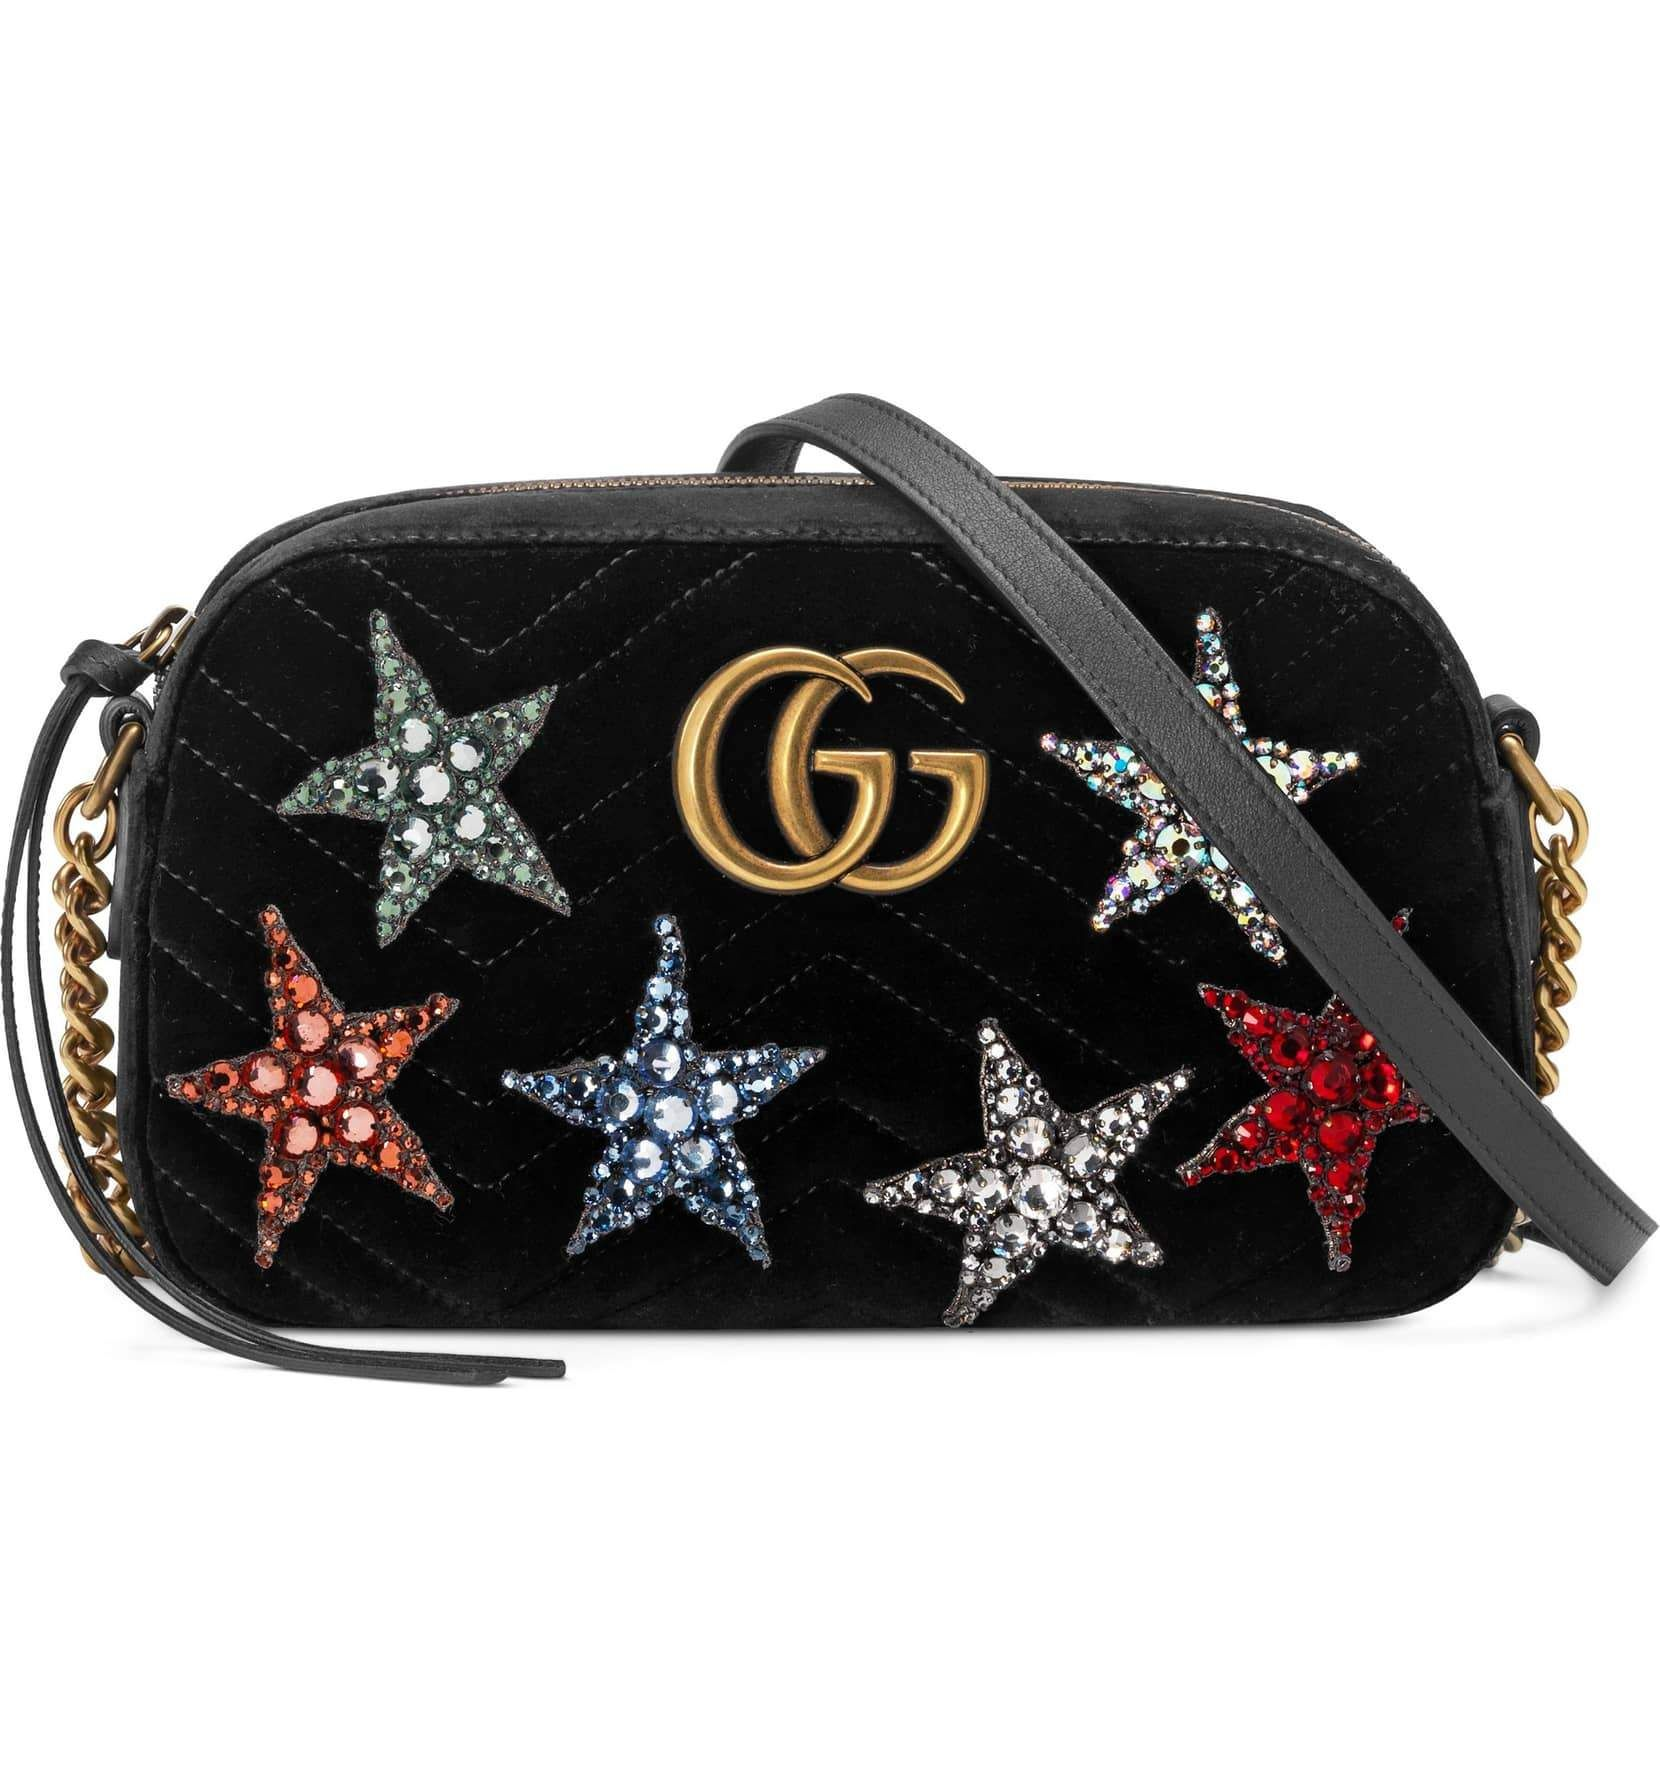 5af138c83208 Gucci Small Marmont Crystal Stars Velvet Bag in 2019   Products ...